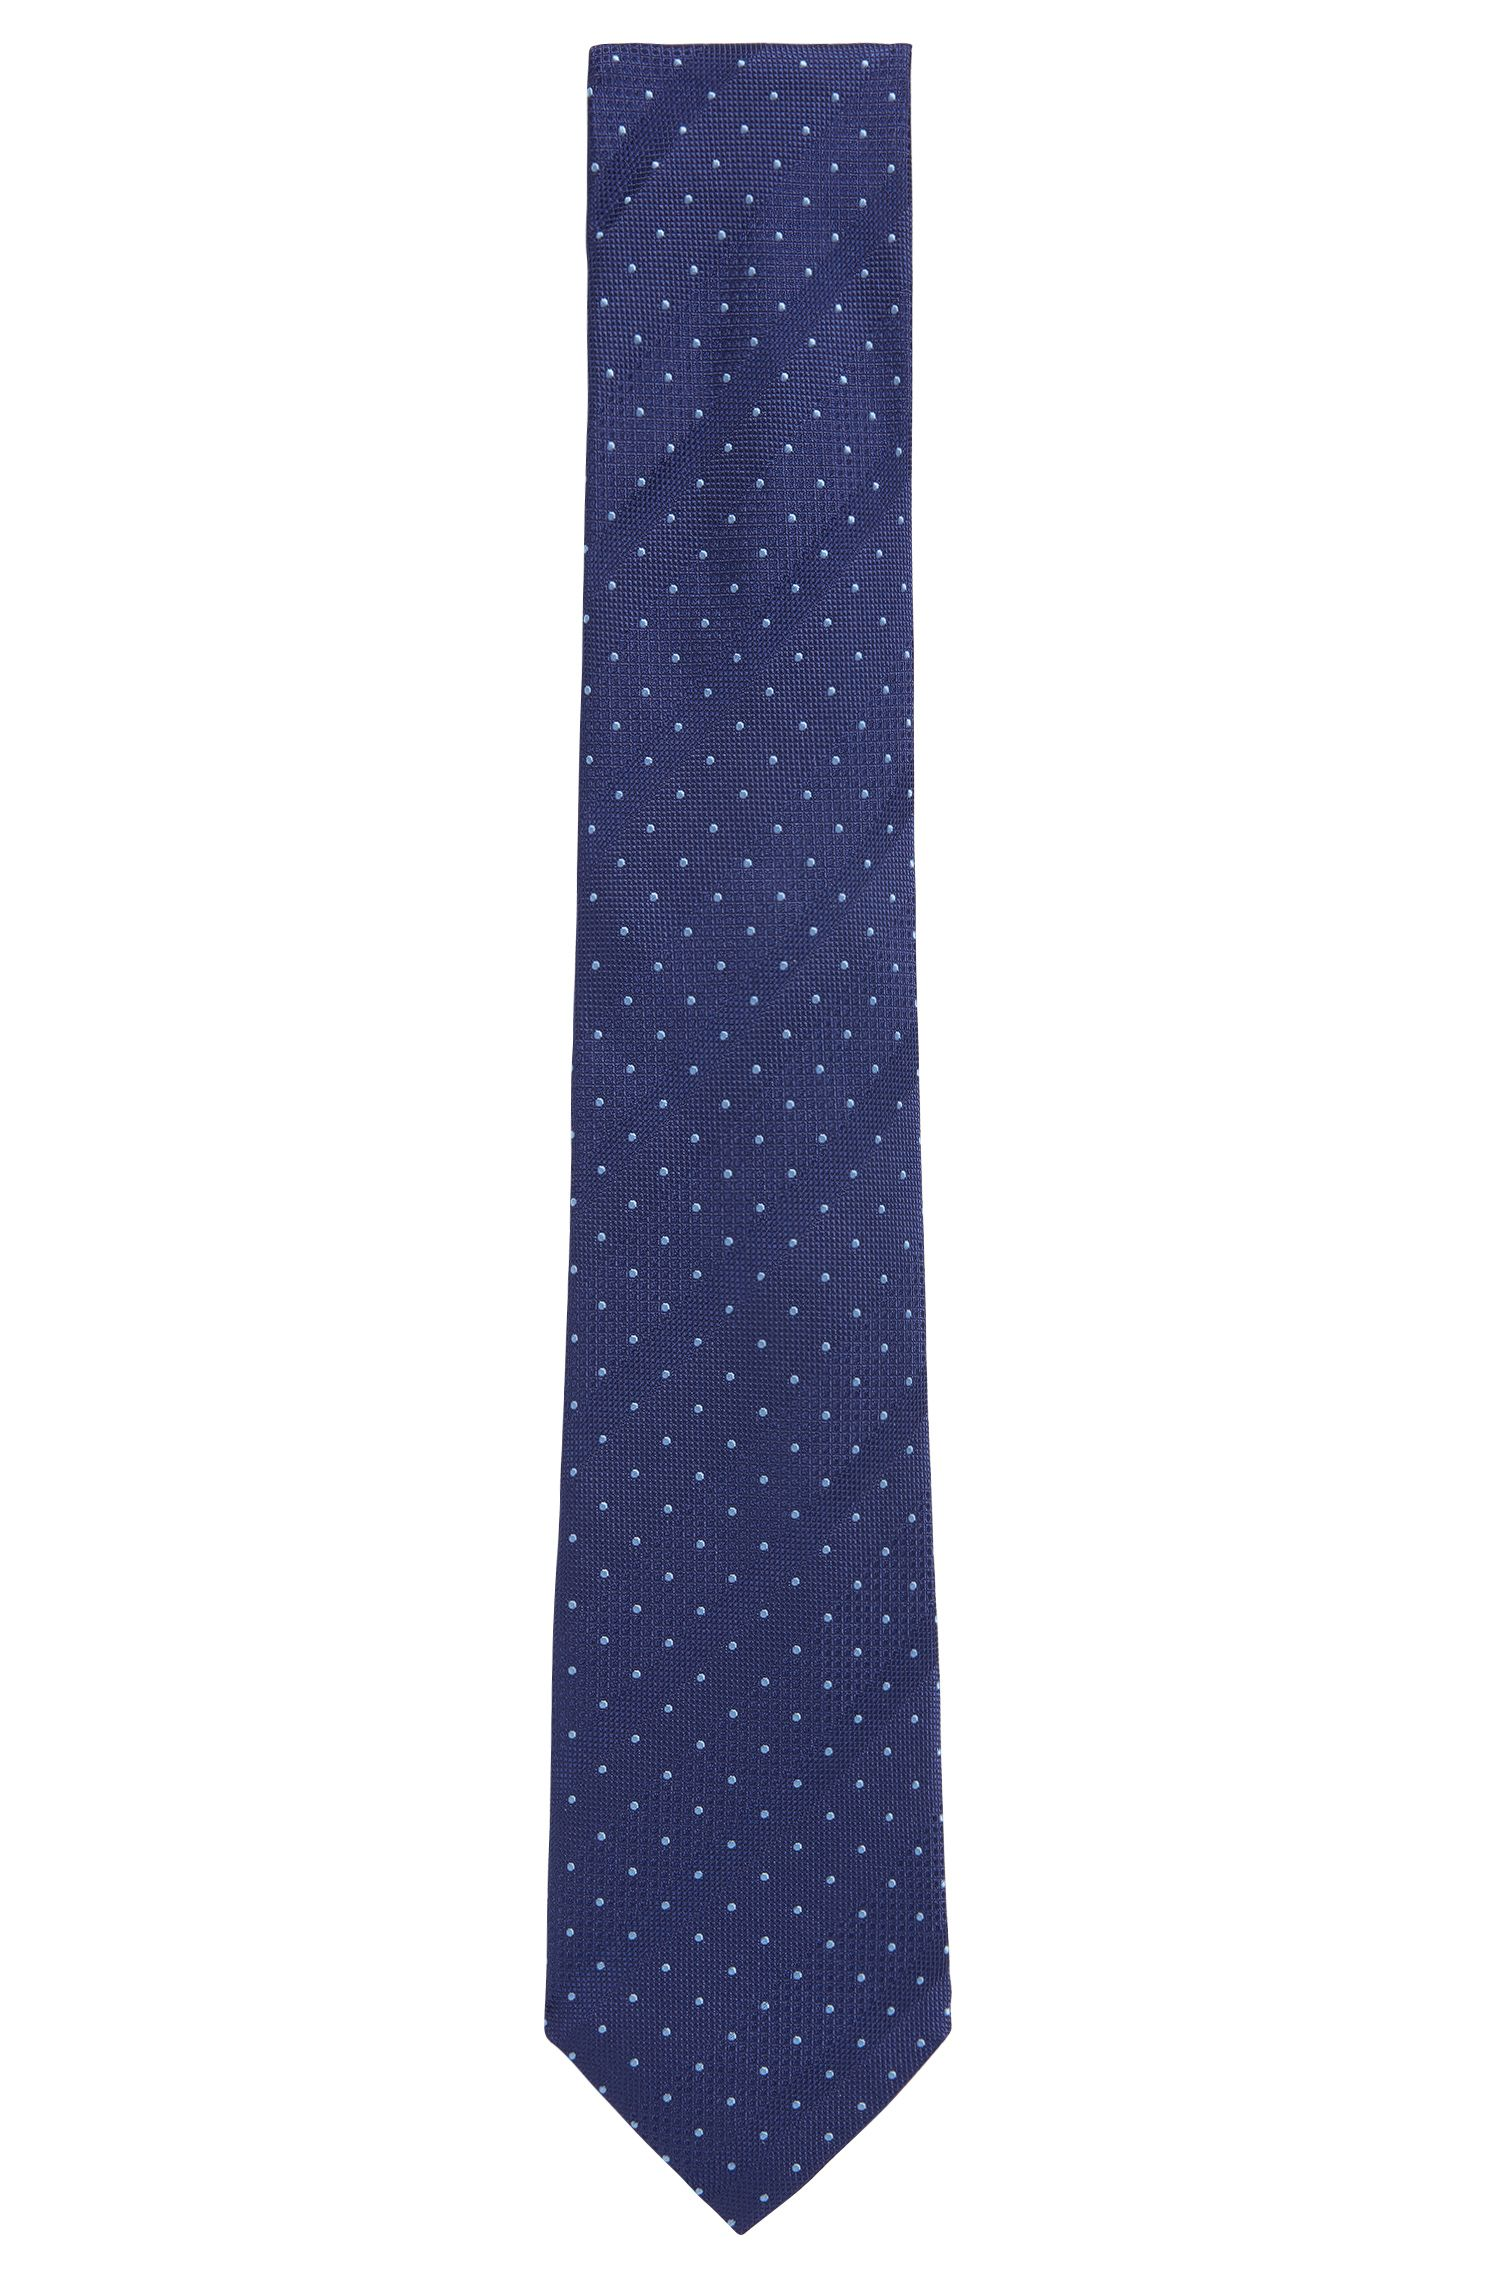 Tonal Striped & Dotted Italian Silk Tie